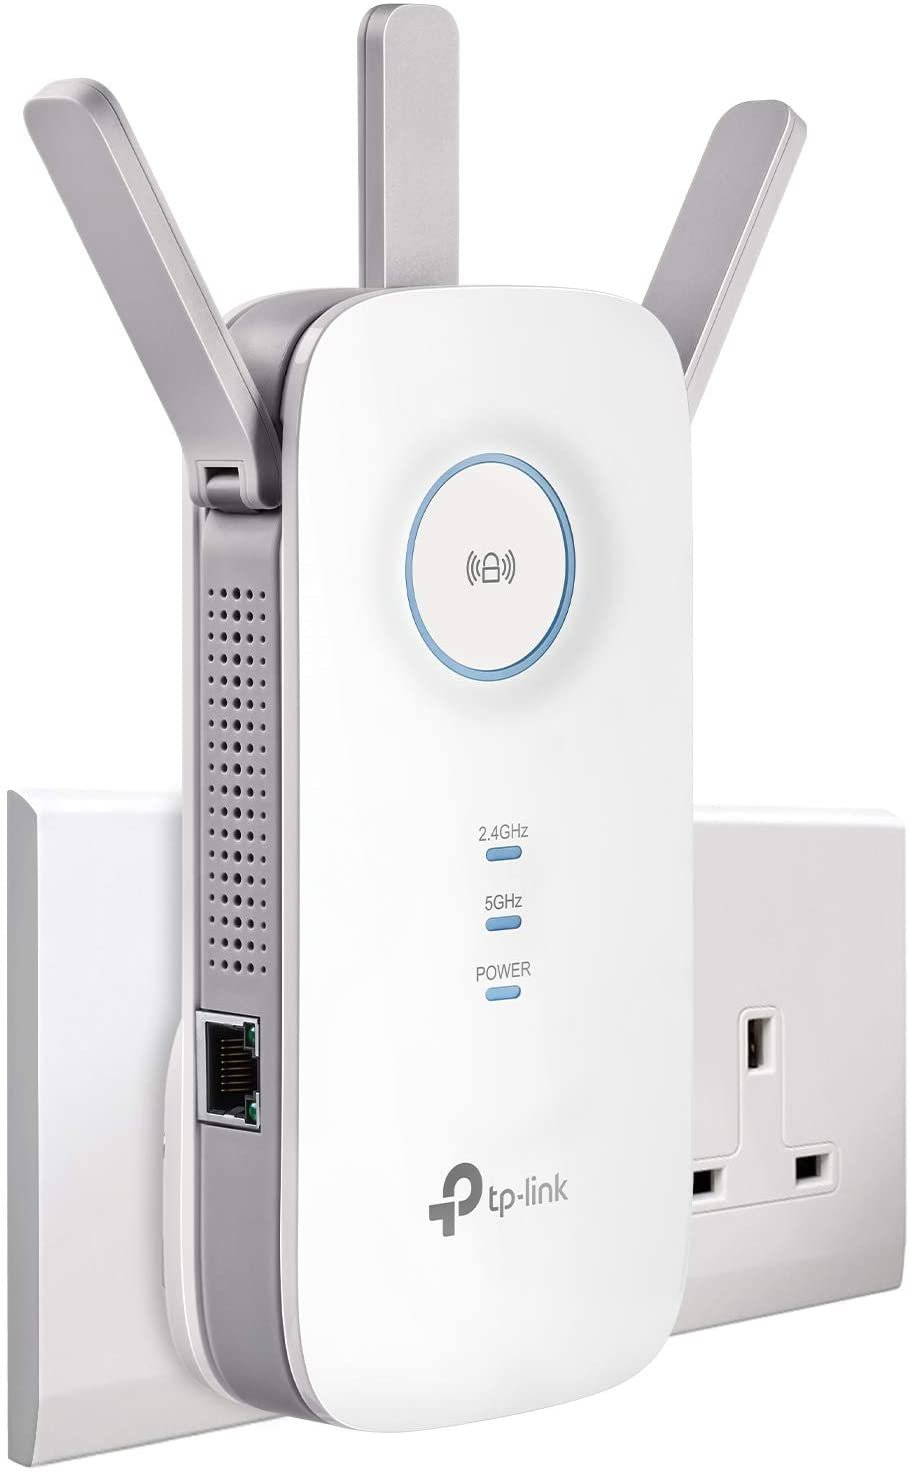 TP link white WiFi booster